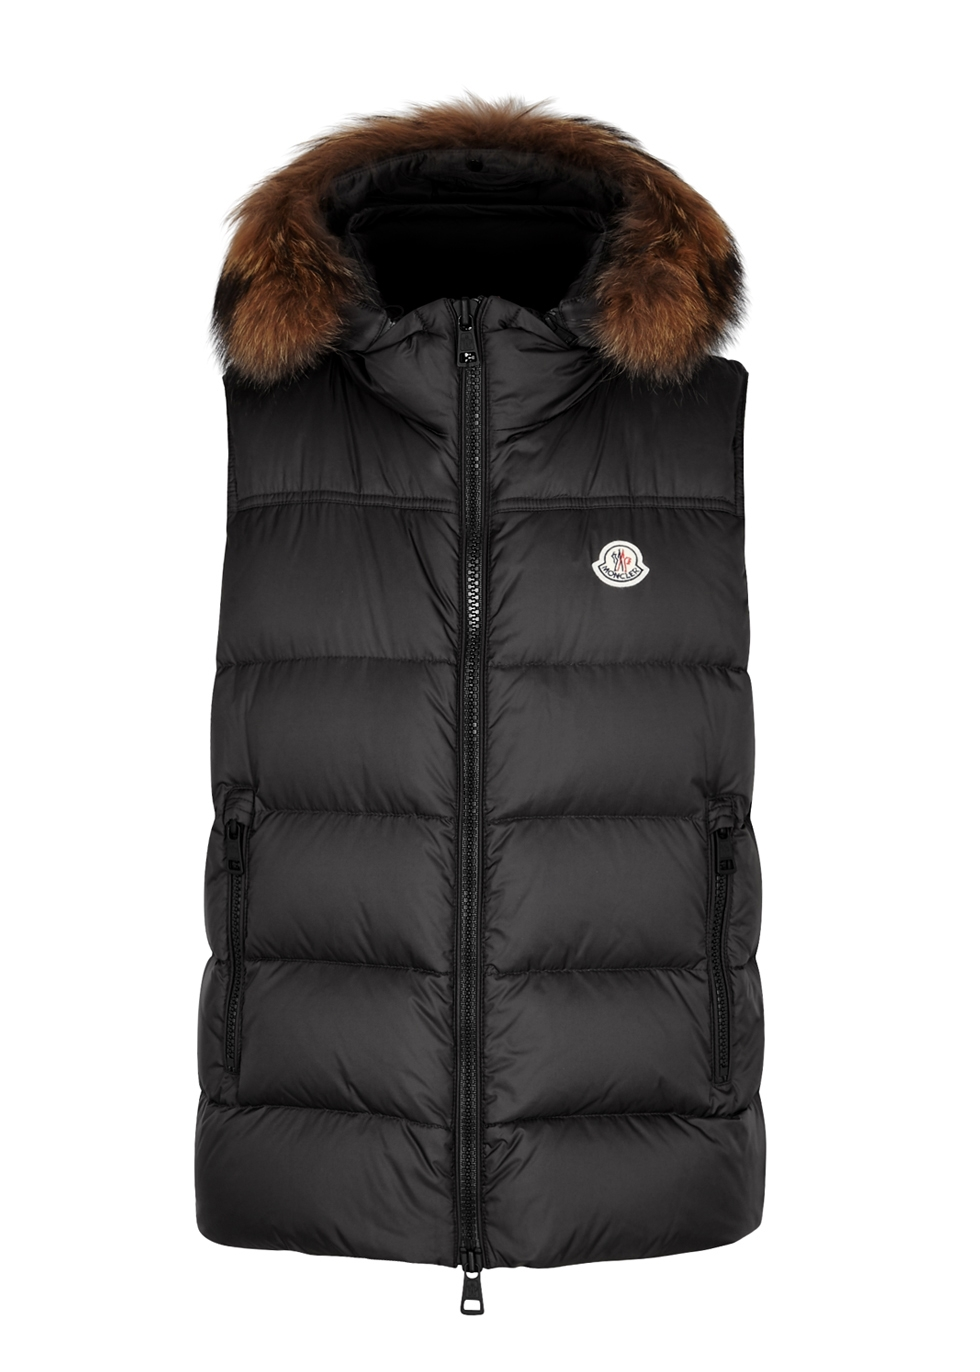 Youri charcoal fur-trimmed shell gilet - Moncler